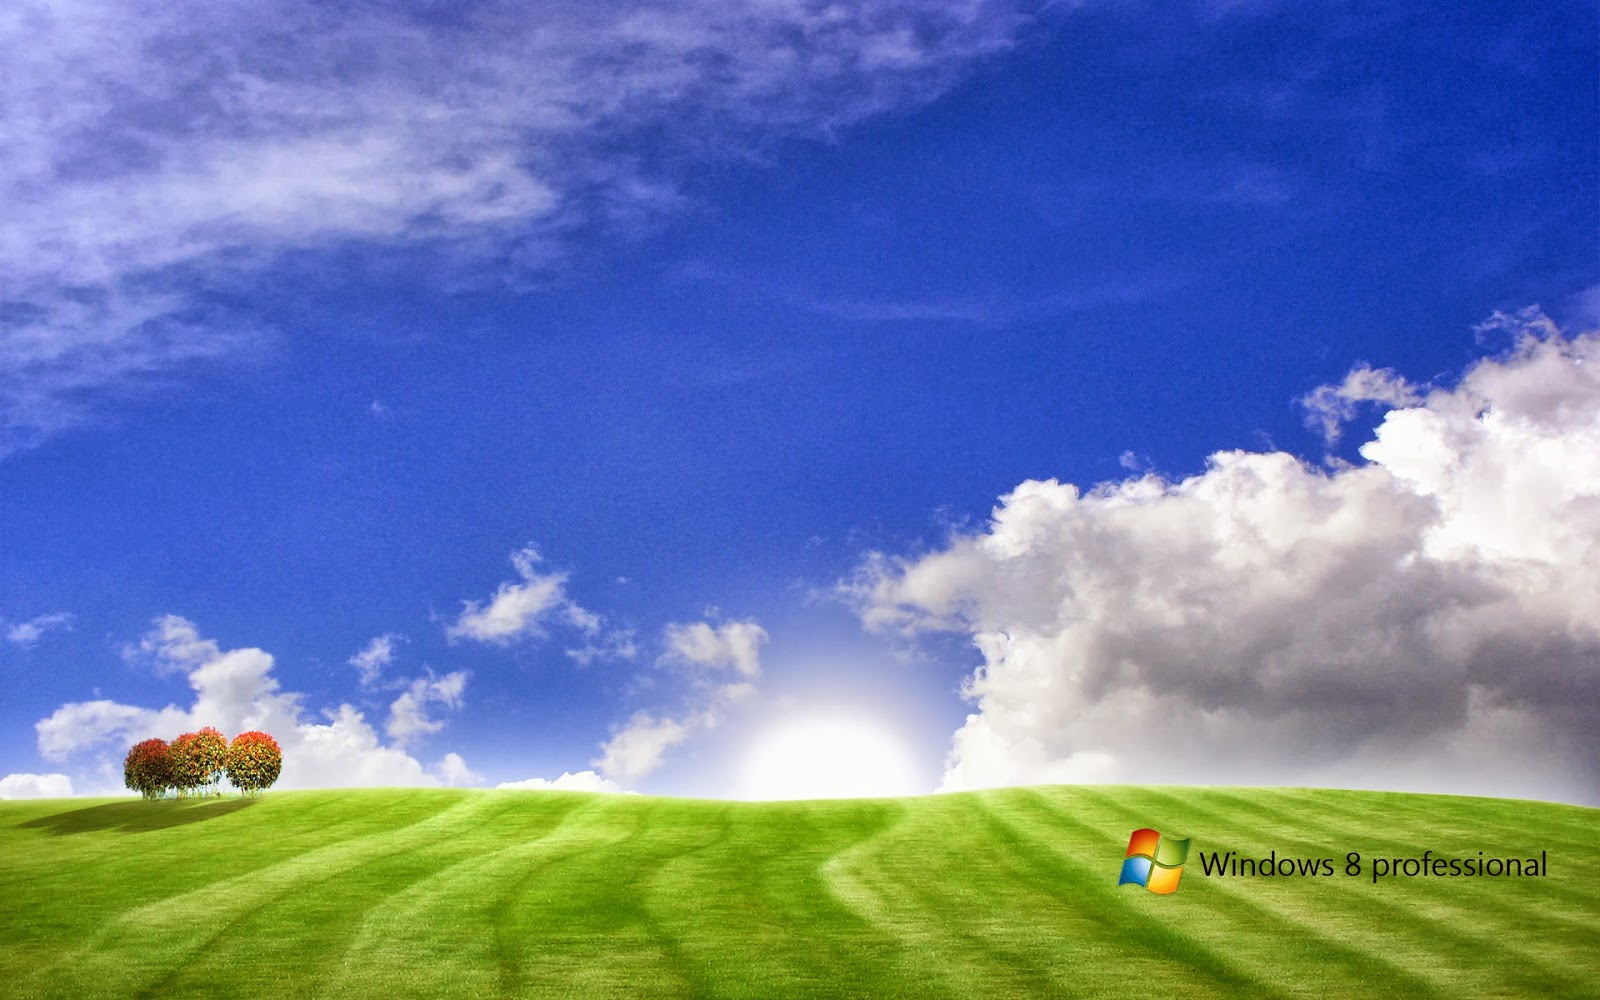 Amazing Windows 8 Picture